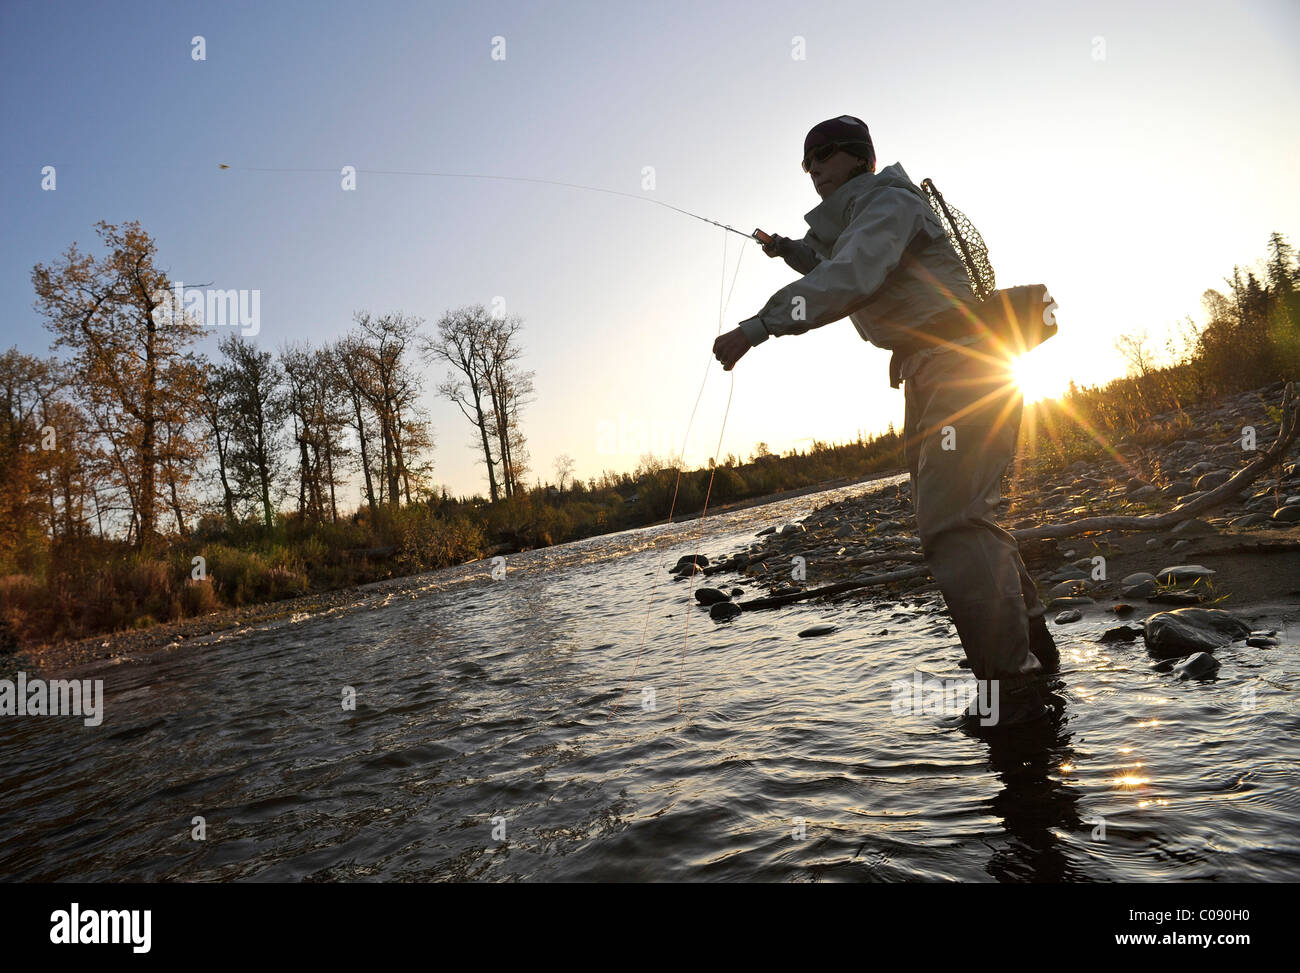 of a woman flyfishing and casts for wild steelhead on Deep Creek, Kenai Peninsula, Southcentral Alaska, Autumn - Stock Image